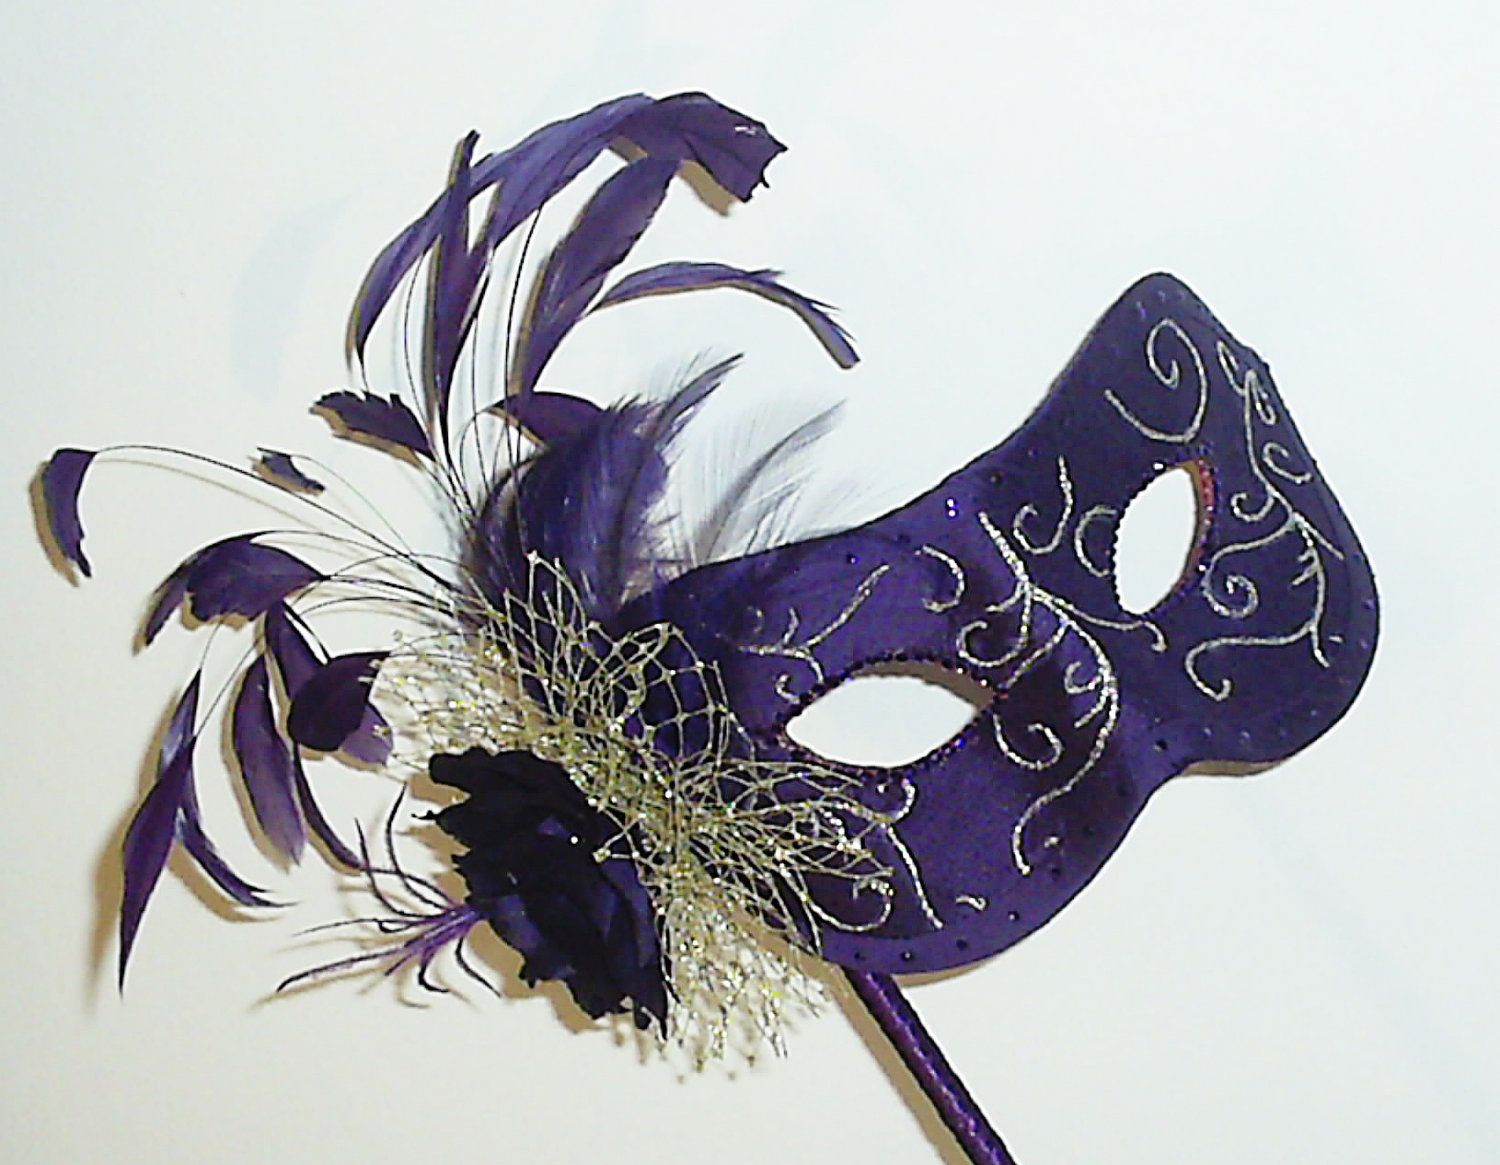 Masquerade mask masquerade mask vine mask metal lace masquerade - Purple And Gold Masquerade Ball Mask